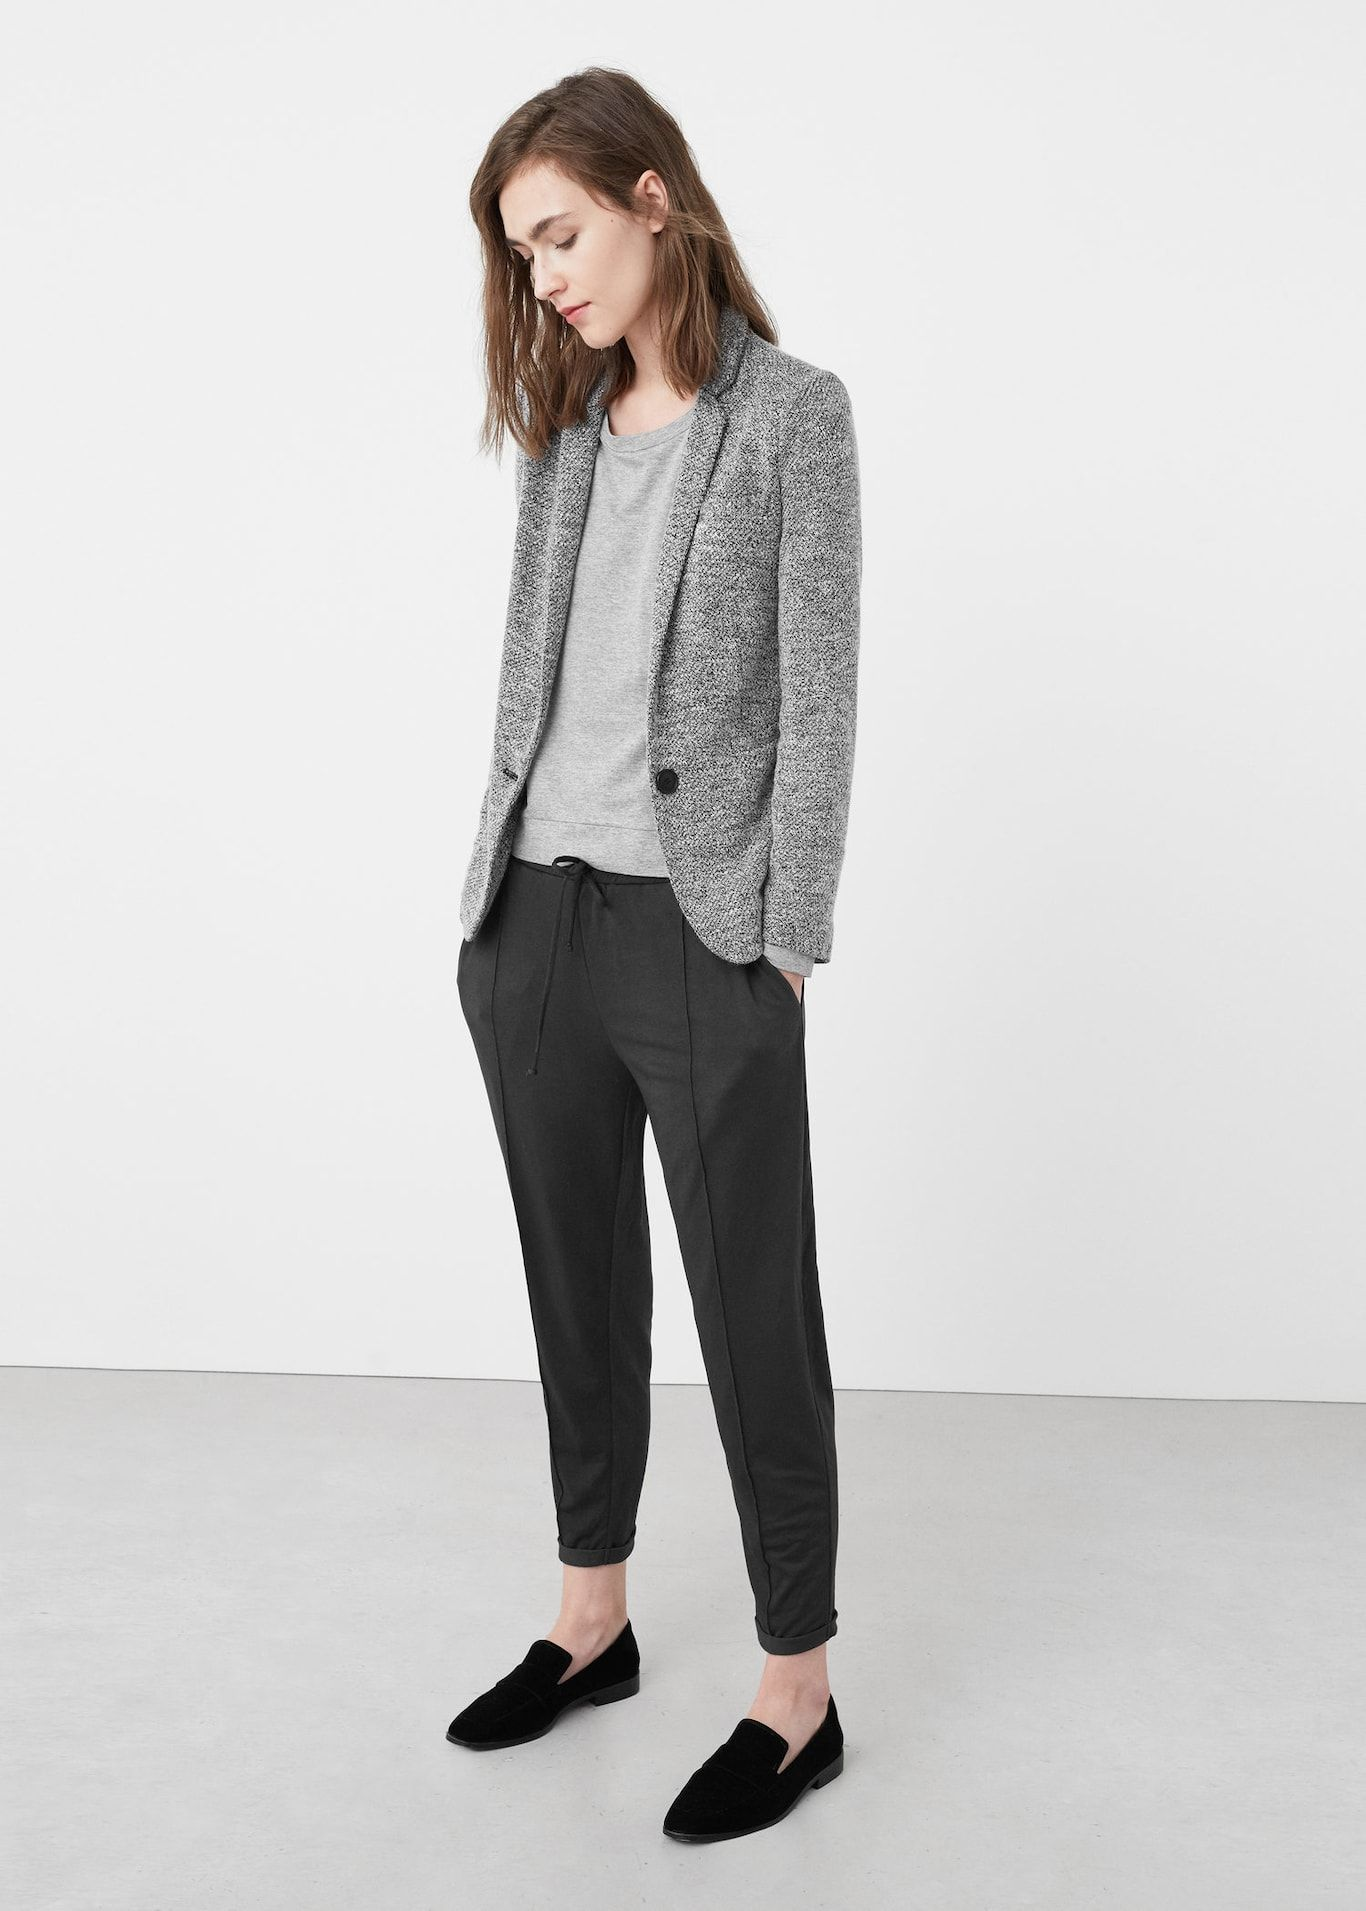 Winter Work Outfits For Women